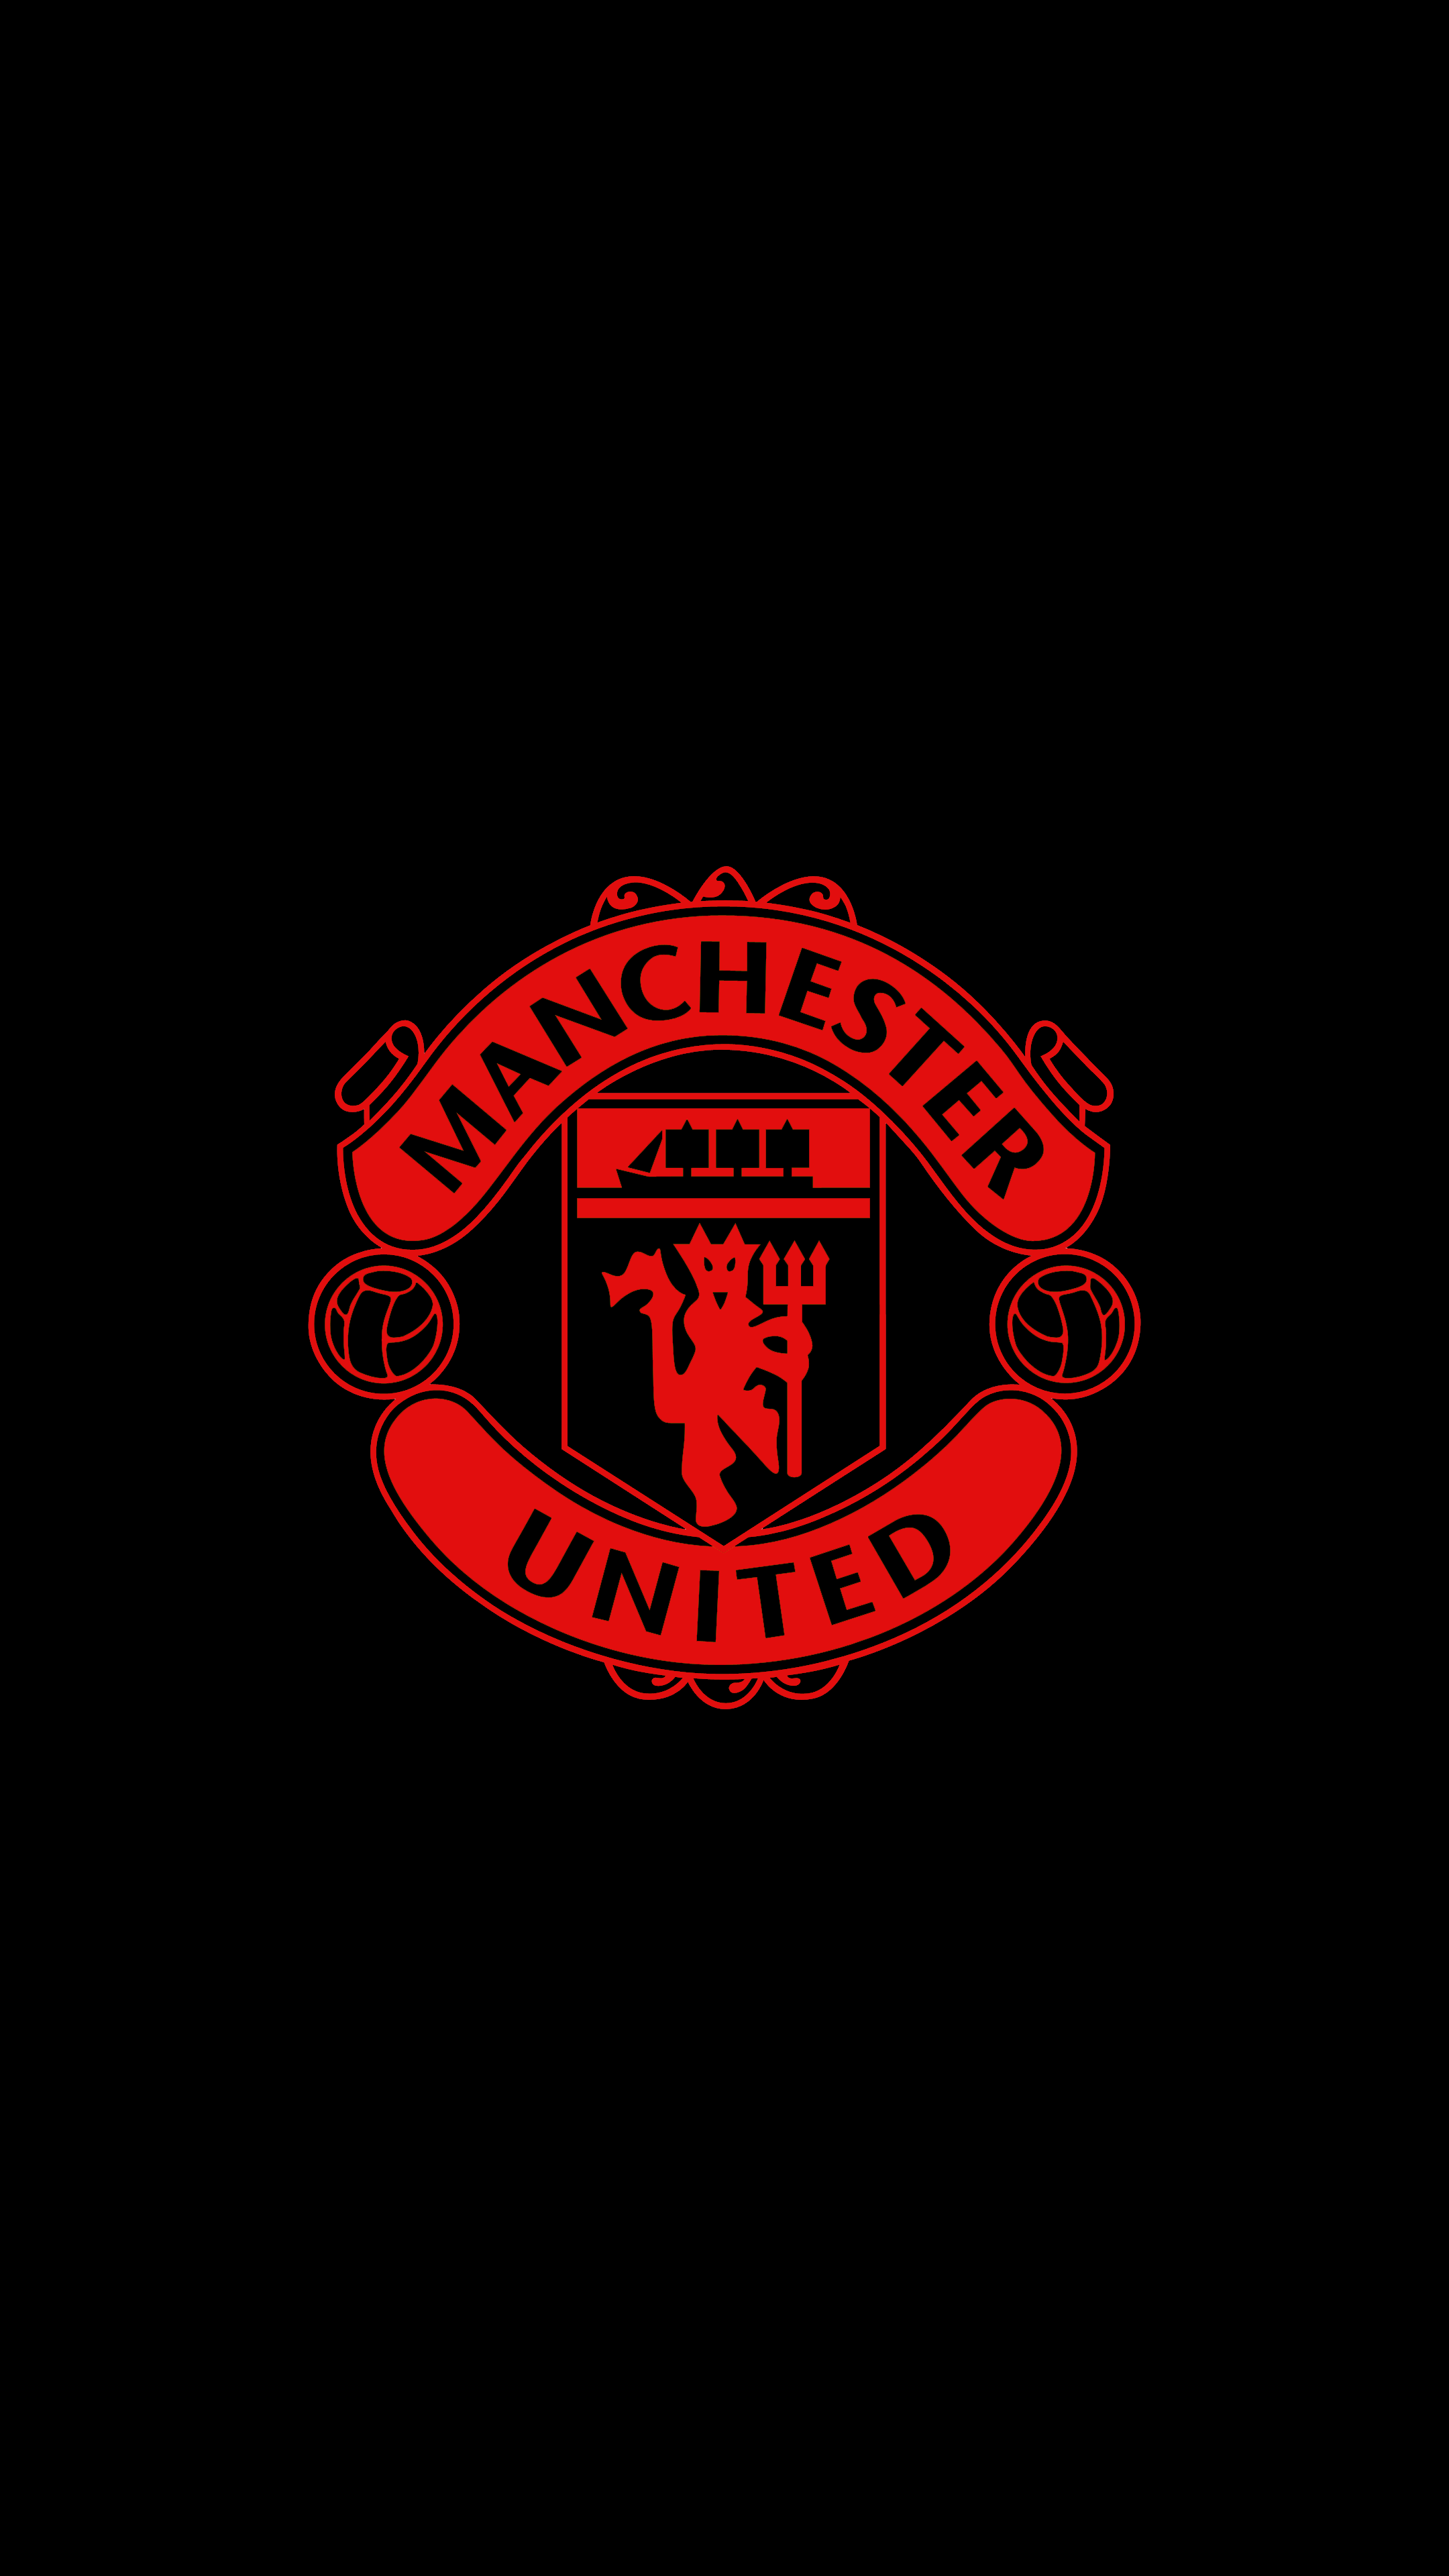 Manchester United 4k Wallpaper Manchester United 4k Wallpaper In 2020 Manchester United Wallpaper Manchester United Logo Manchester United Wallpapers Iphone